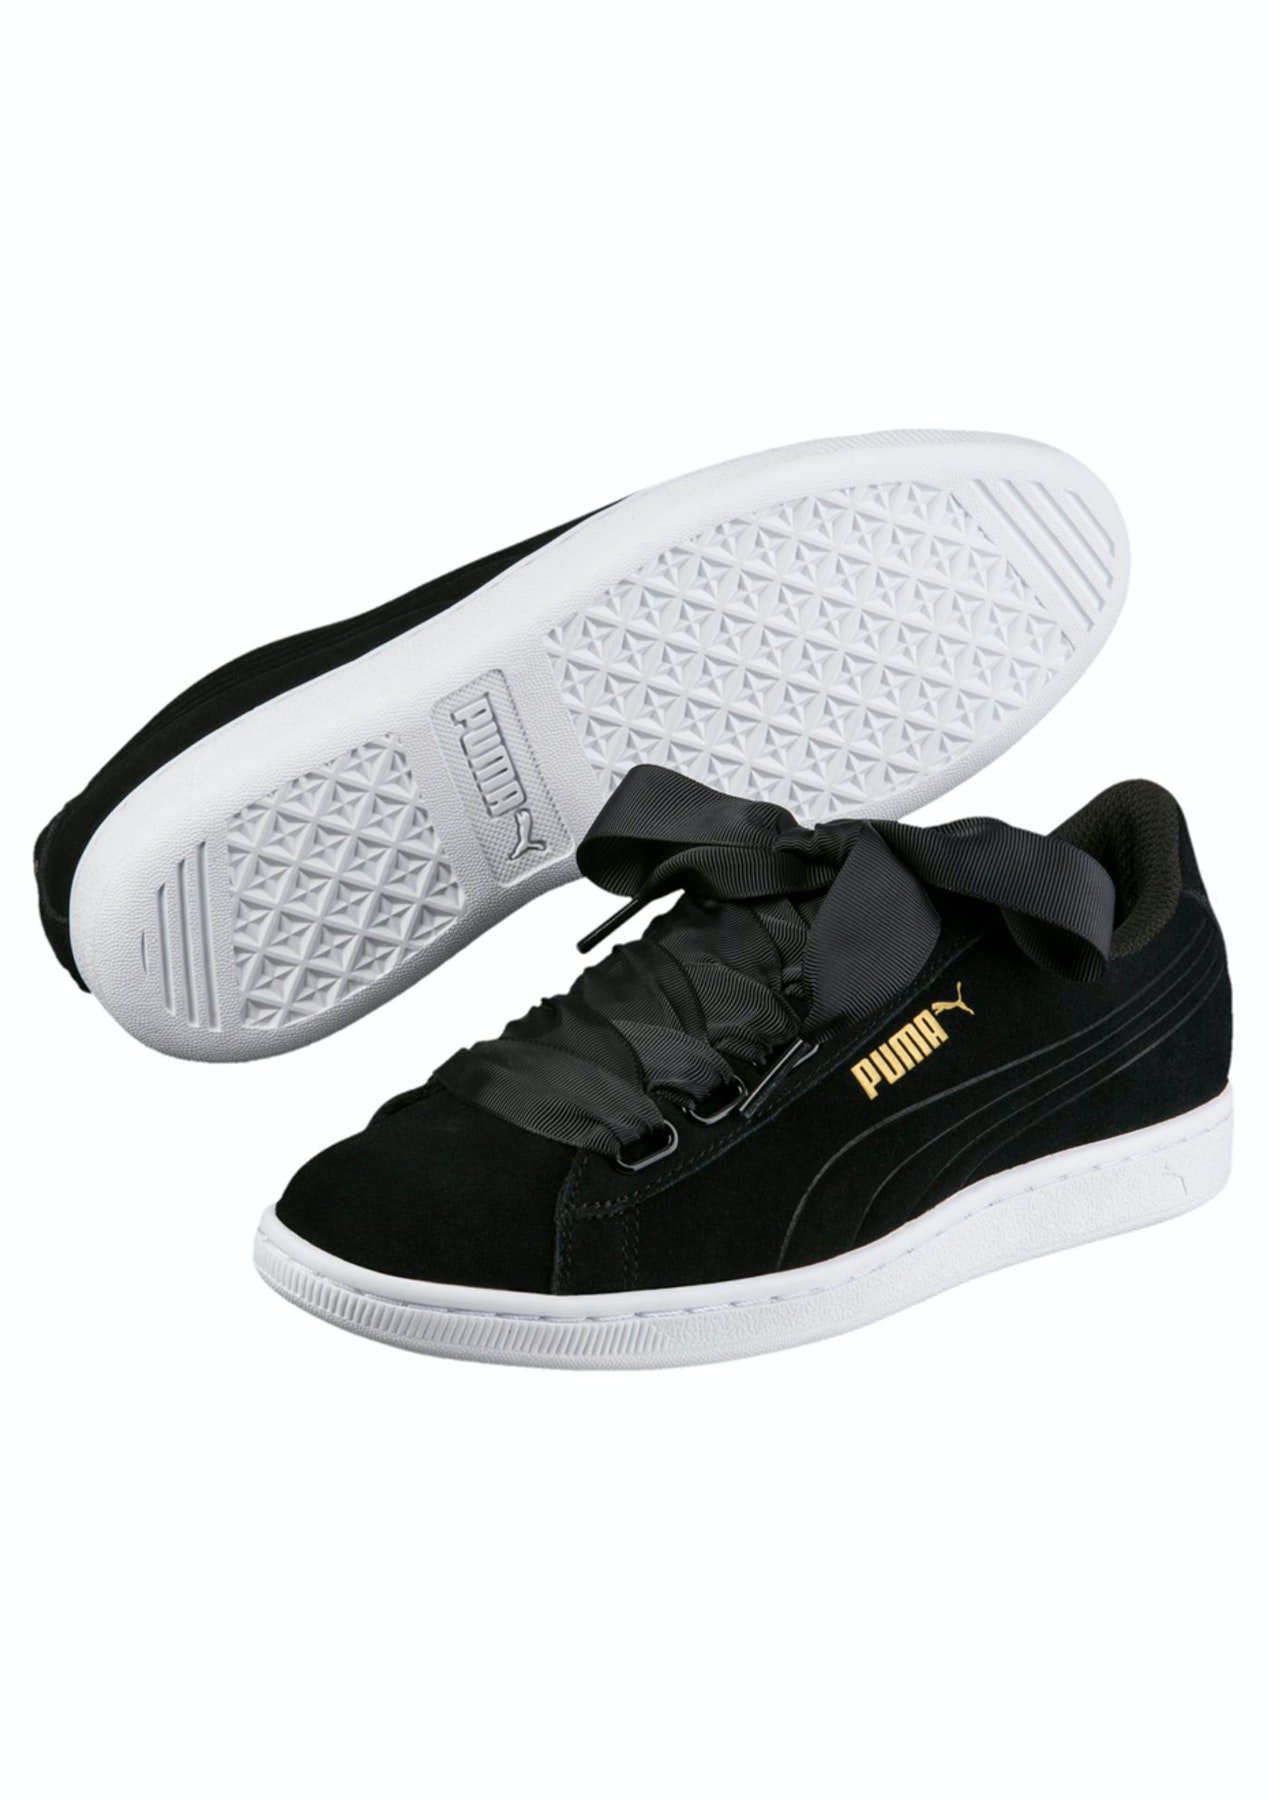 4143ccc16eb ... Puma Womens - Vikky Ribbon Black - Puma Womens   Kids Up to 60% Off PUMA  Suede bow lace-up leather trainers white Puma White 350120140 BCQVNDS ...